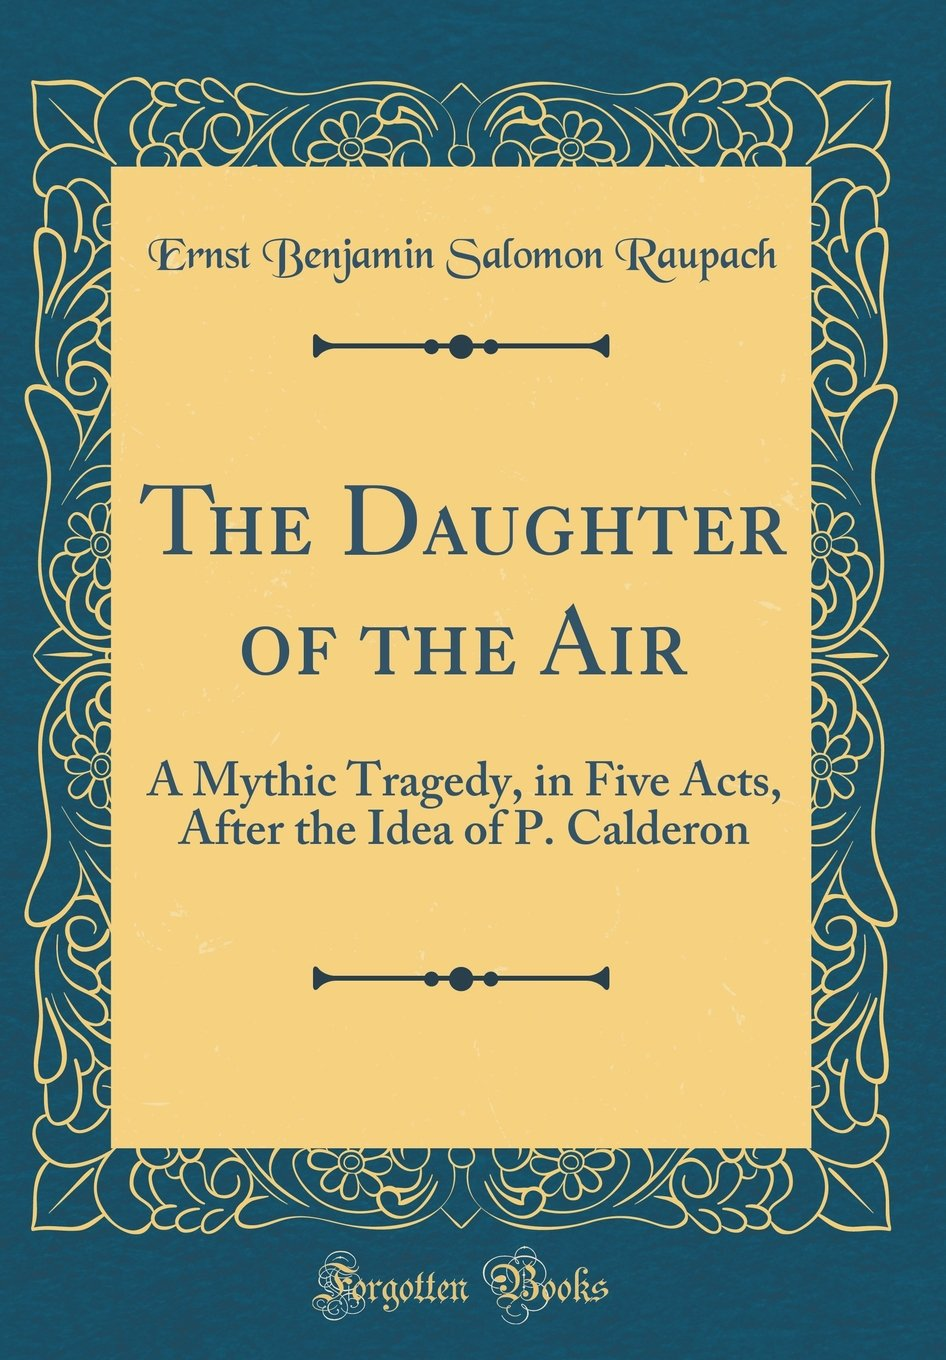 Read Online The Daughter of the Air: A Mythic Tragedy, in Five Acts, After the Idea of P. Calderon (Classic Reprint) PDF